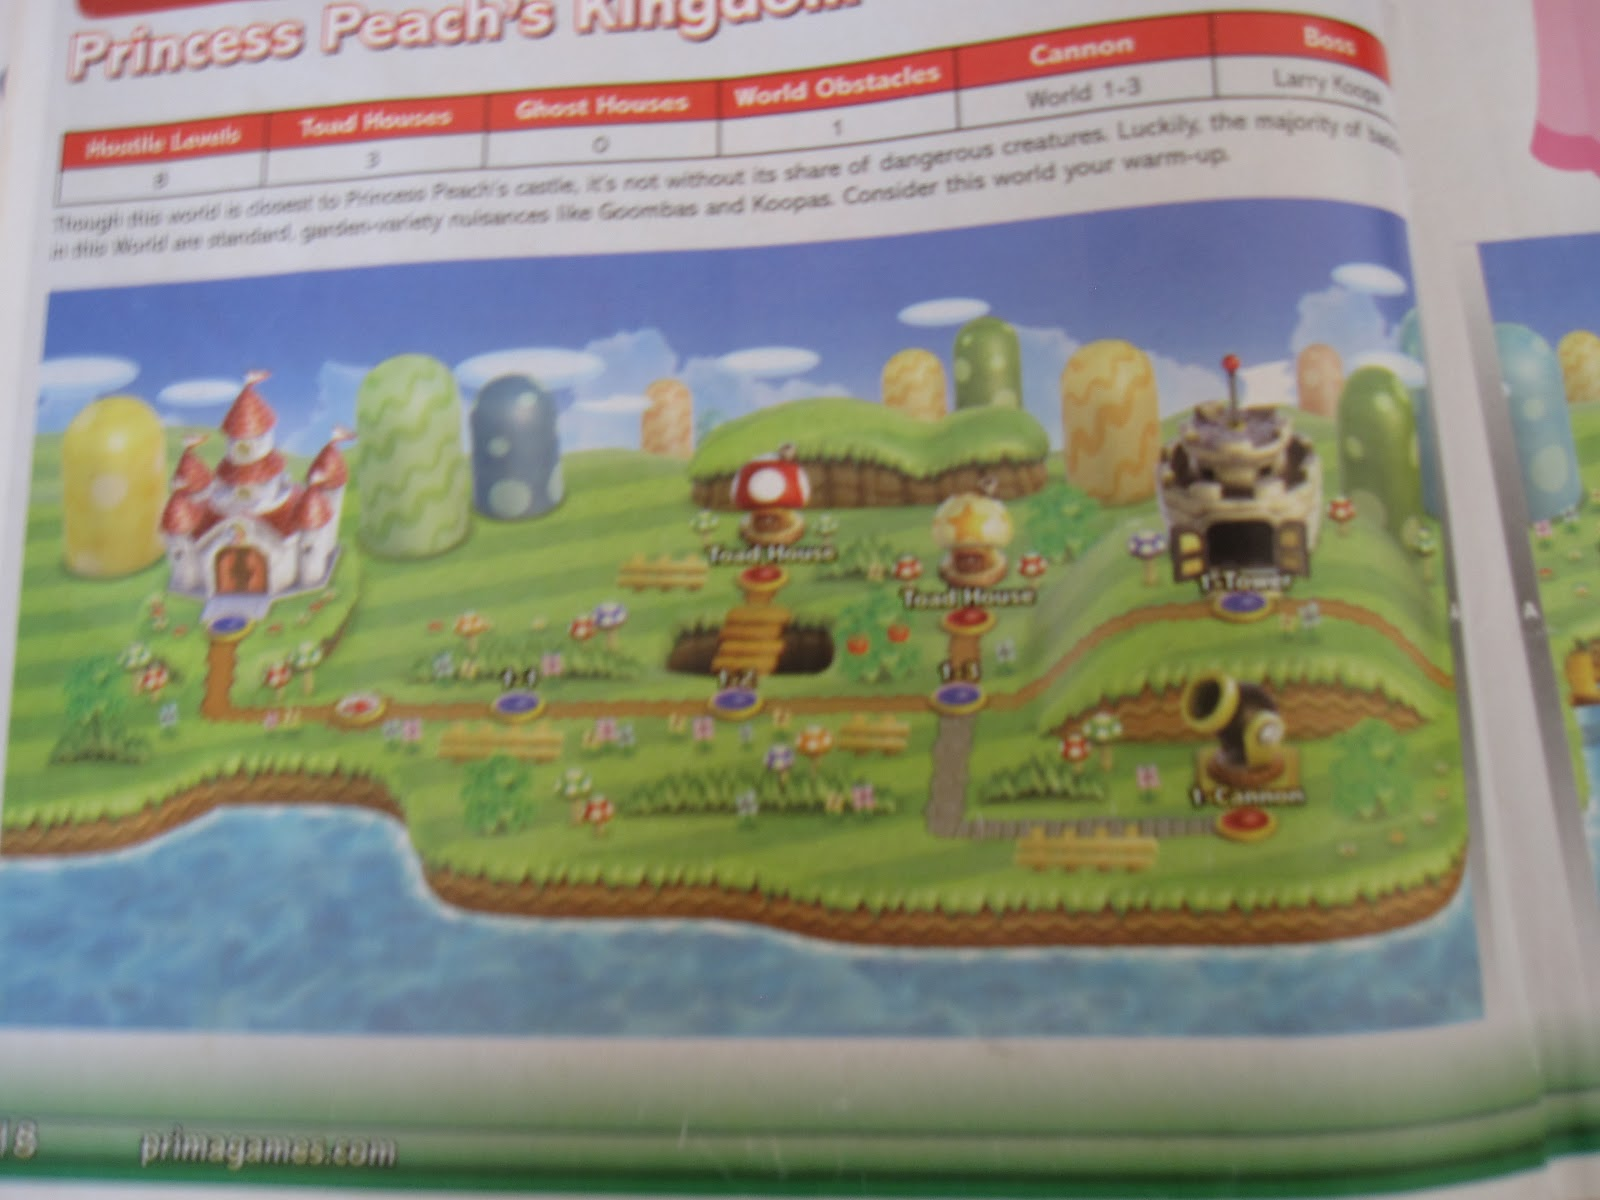 Fastest New Super Mario Bros Wii Route Super Mario Bros Wii